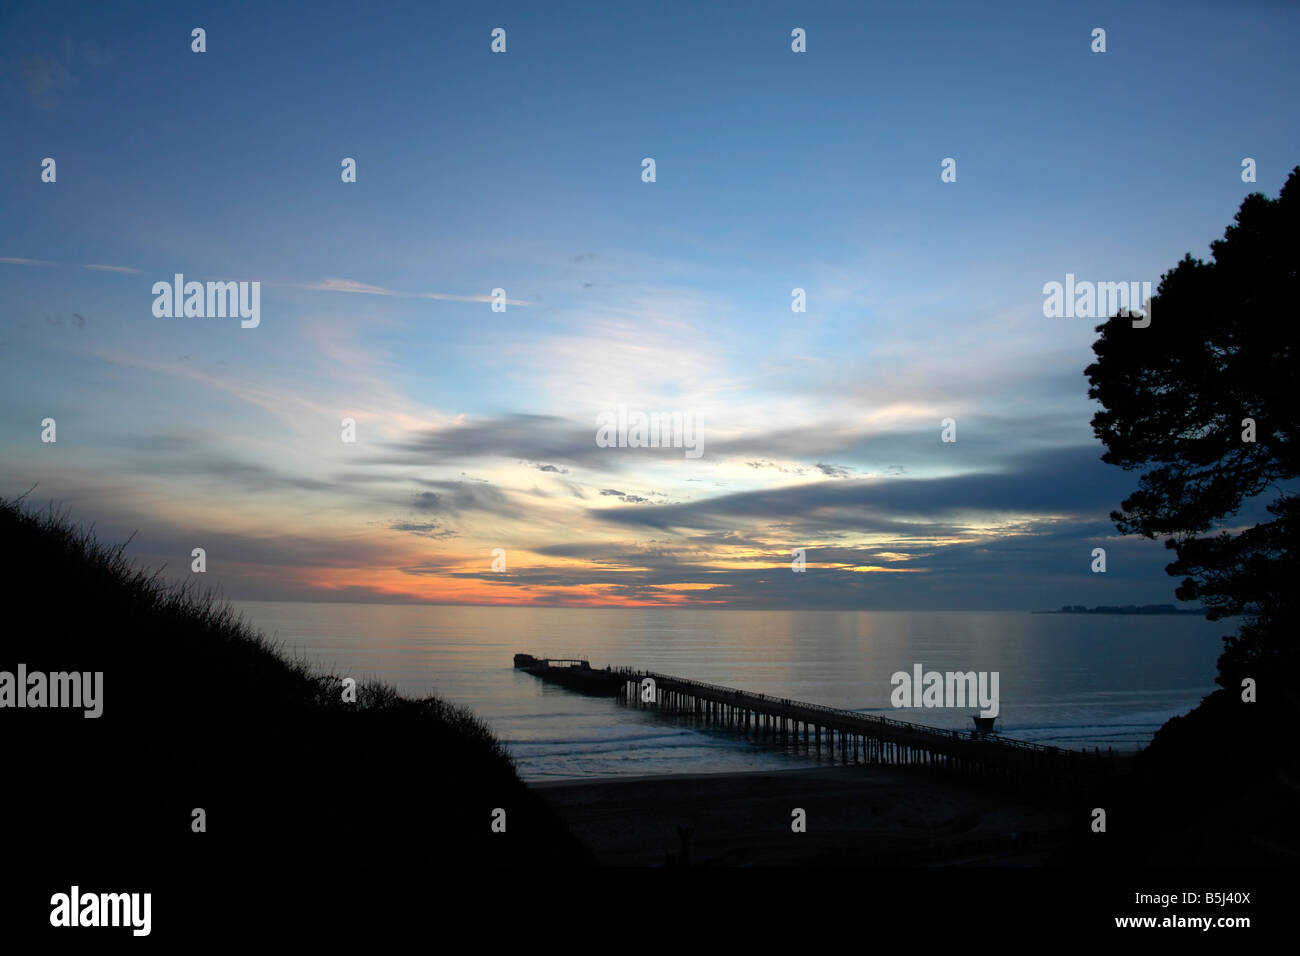 Sunset over Seacliff beach in Aptos, CA. The Palo Alto Cement ship can be seen at the end of the pier in the background. - Stock Image